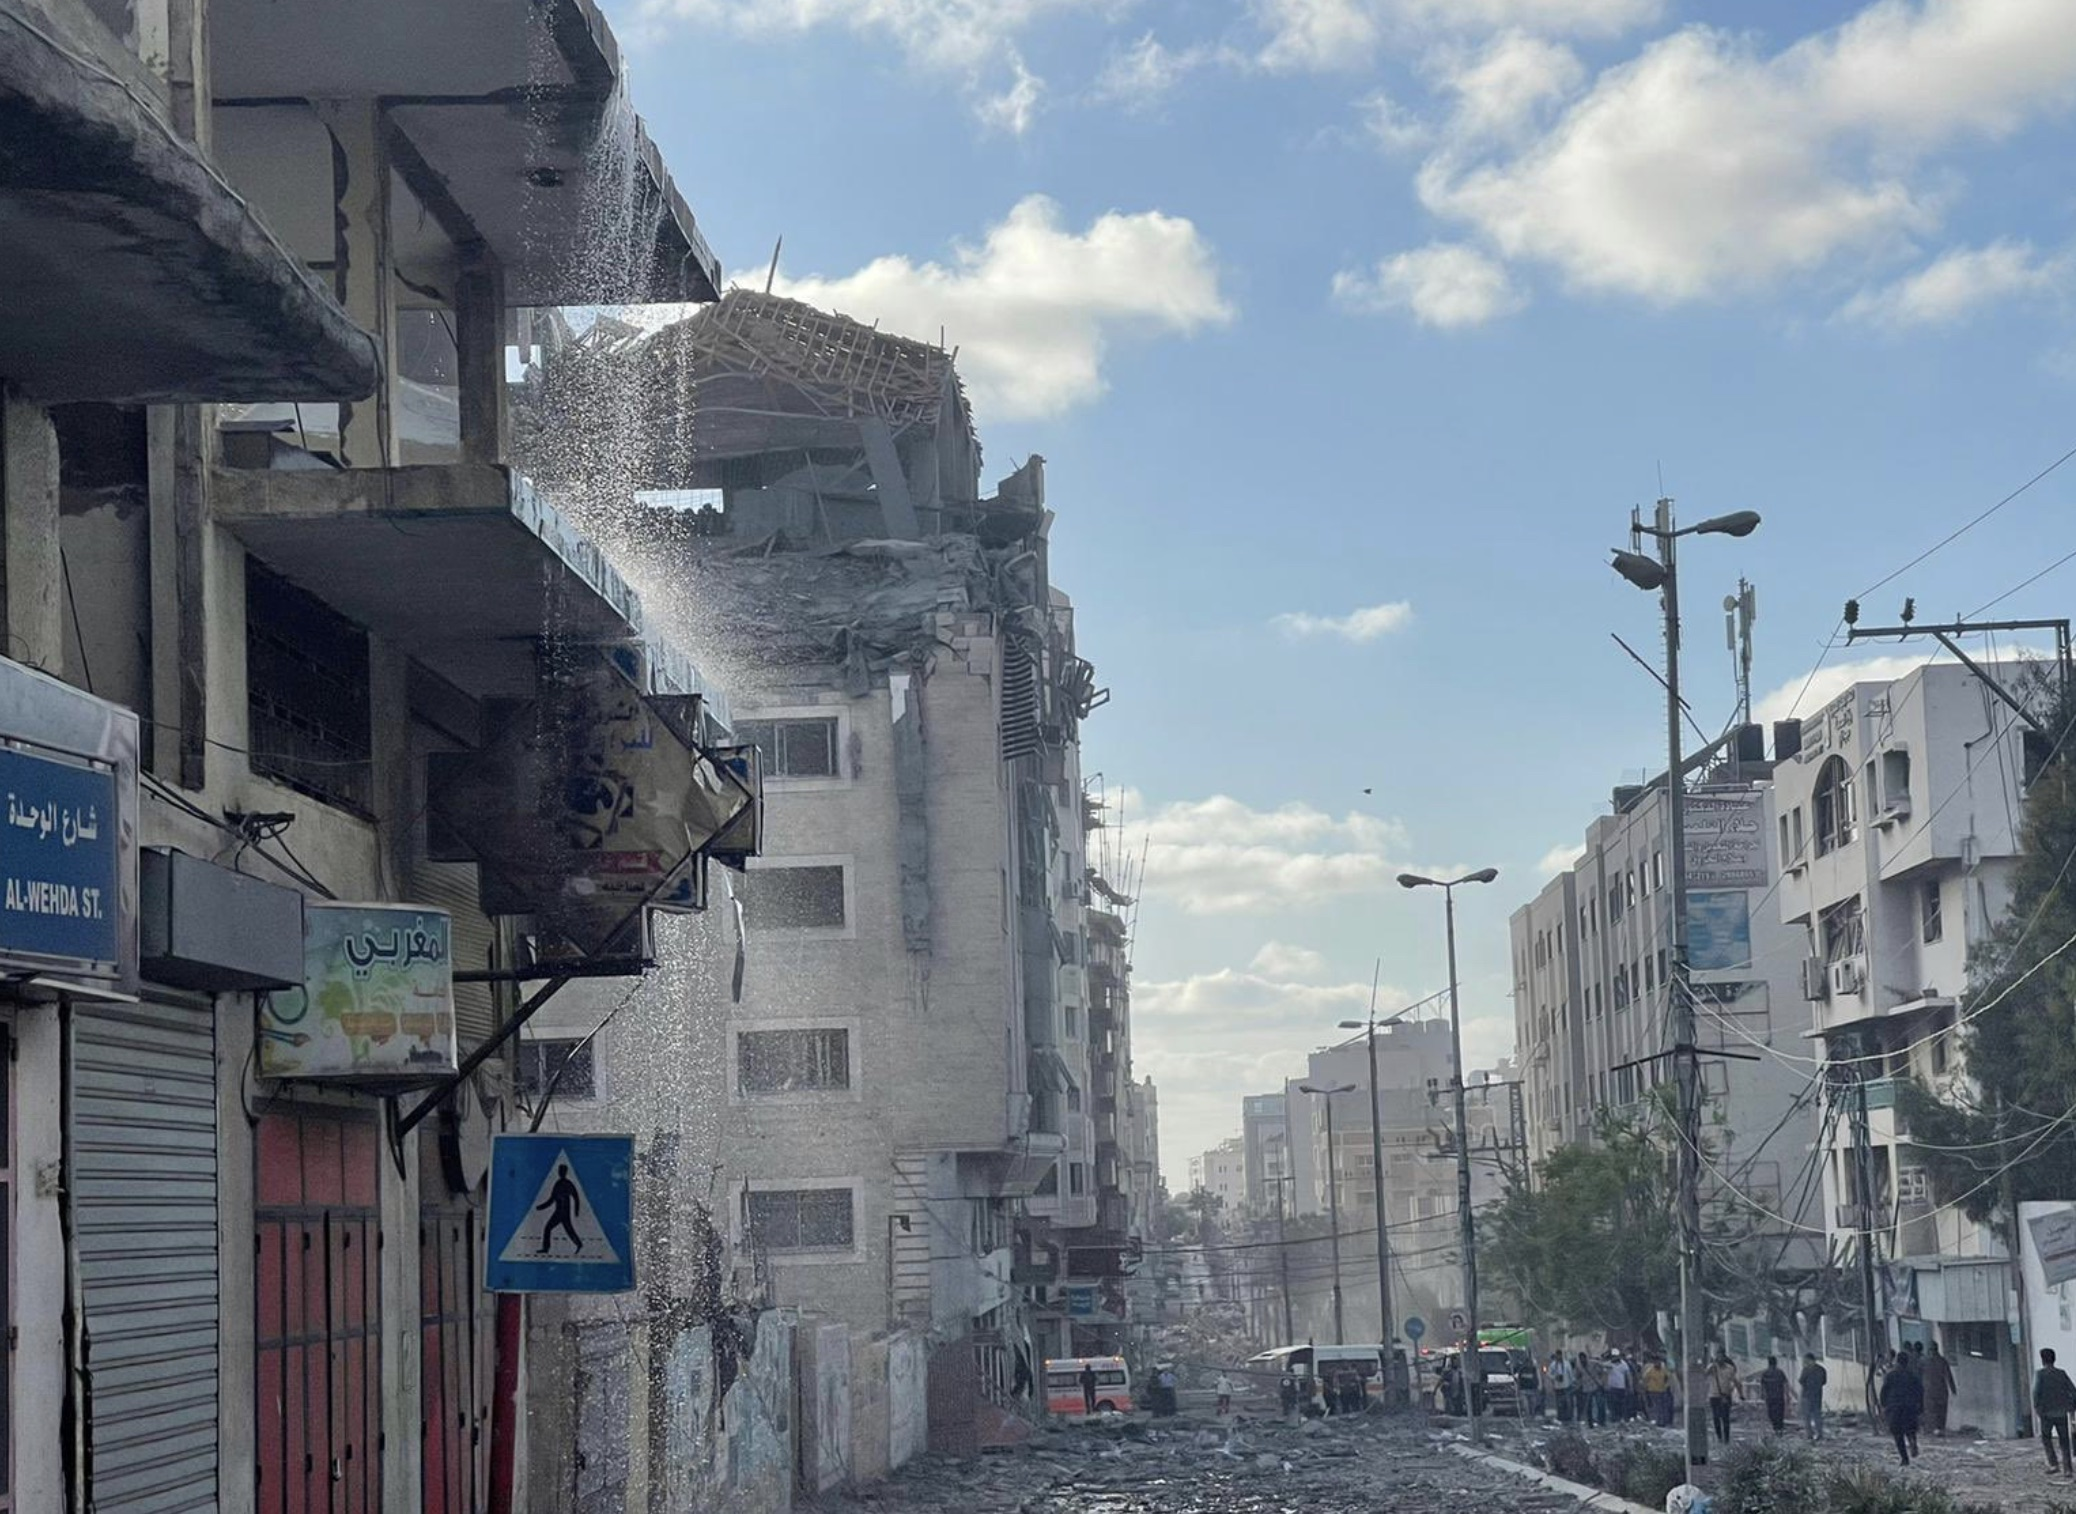 QRCS Headquarters in Gaza, bombed in an Israeli air strike May 17th, 2021. Photo posted on twitter by @fahedalemadi